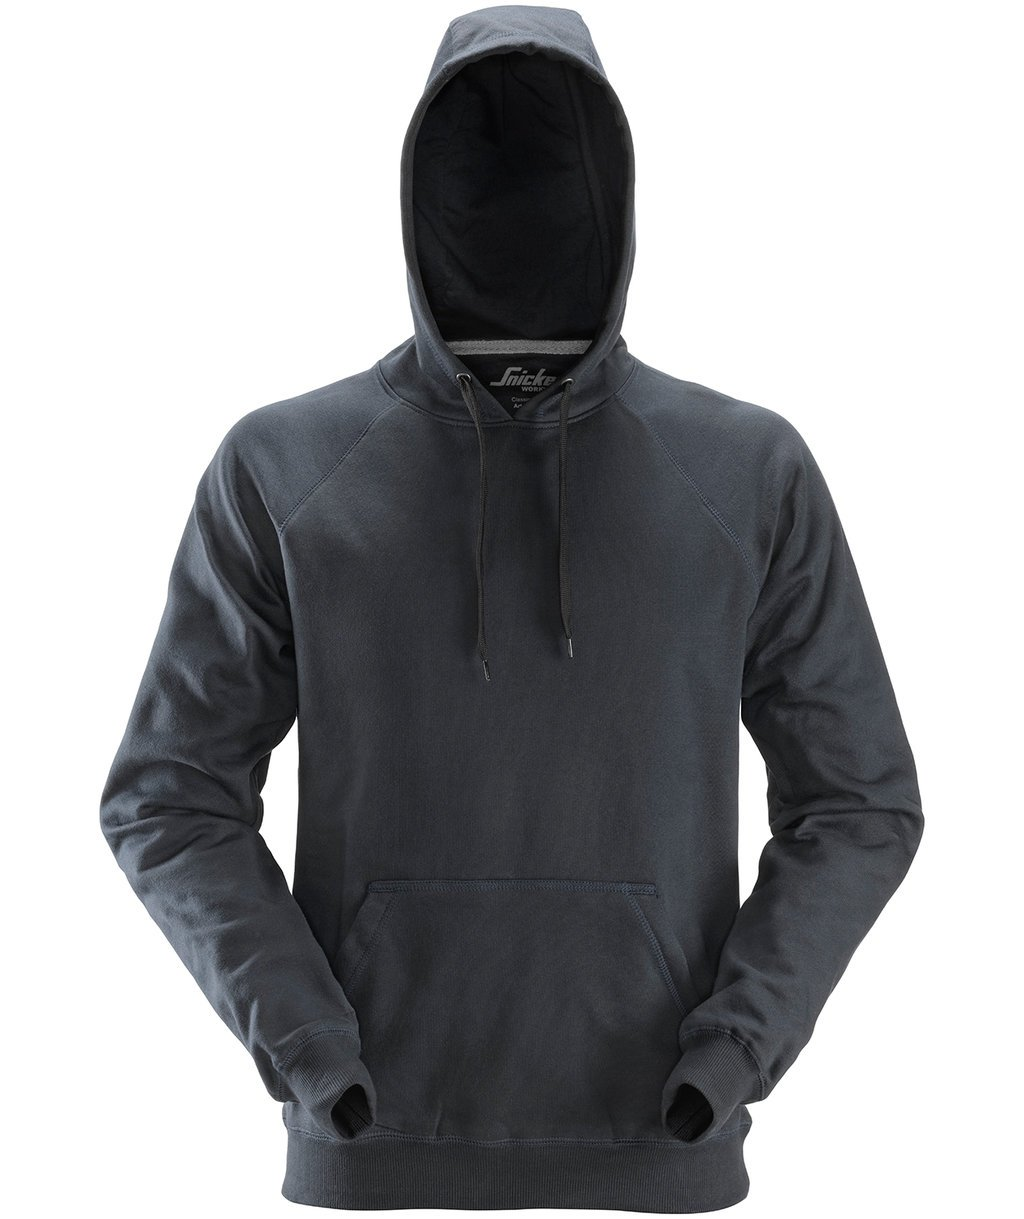 Snickers hoodie, Charcoal